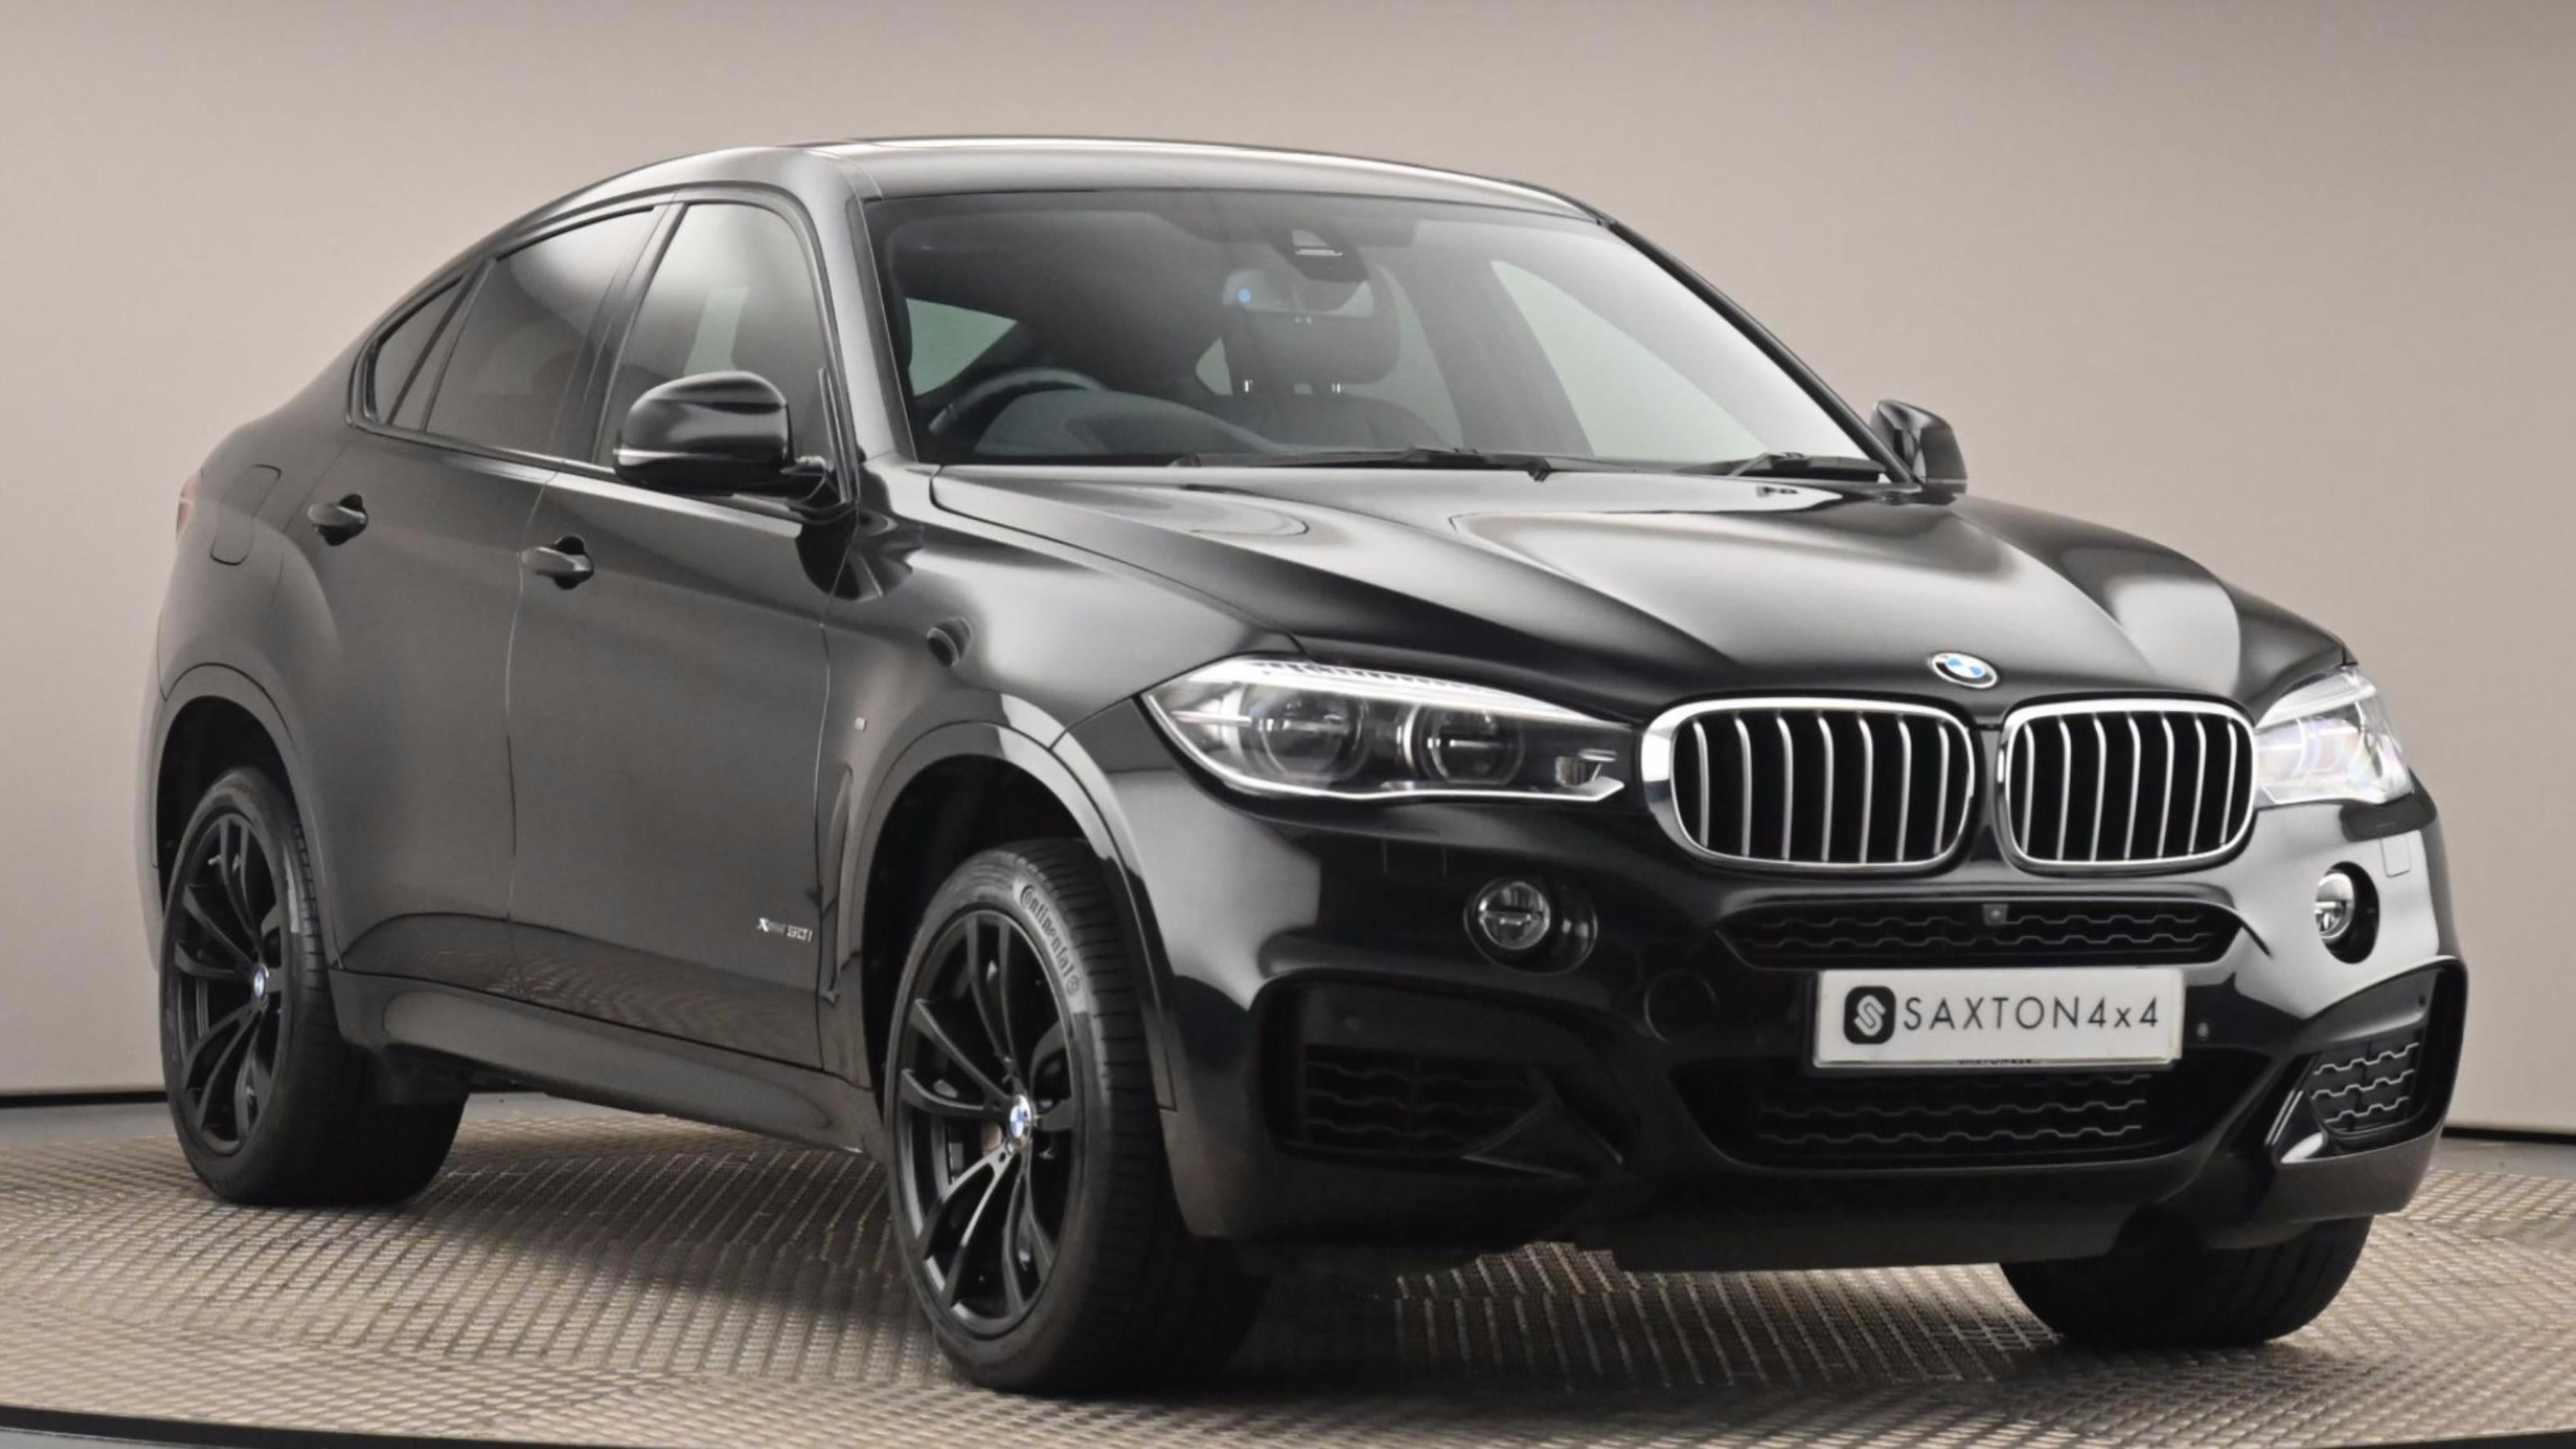 Used 2017 BMW X6 xDrive50i M Sport 5dr Step Auto BLACK at Saxton4x4